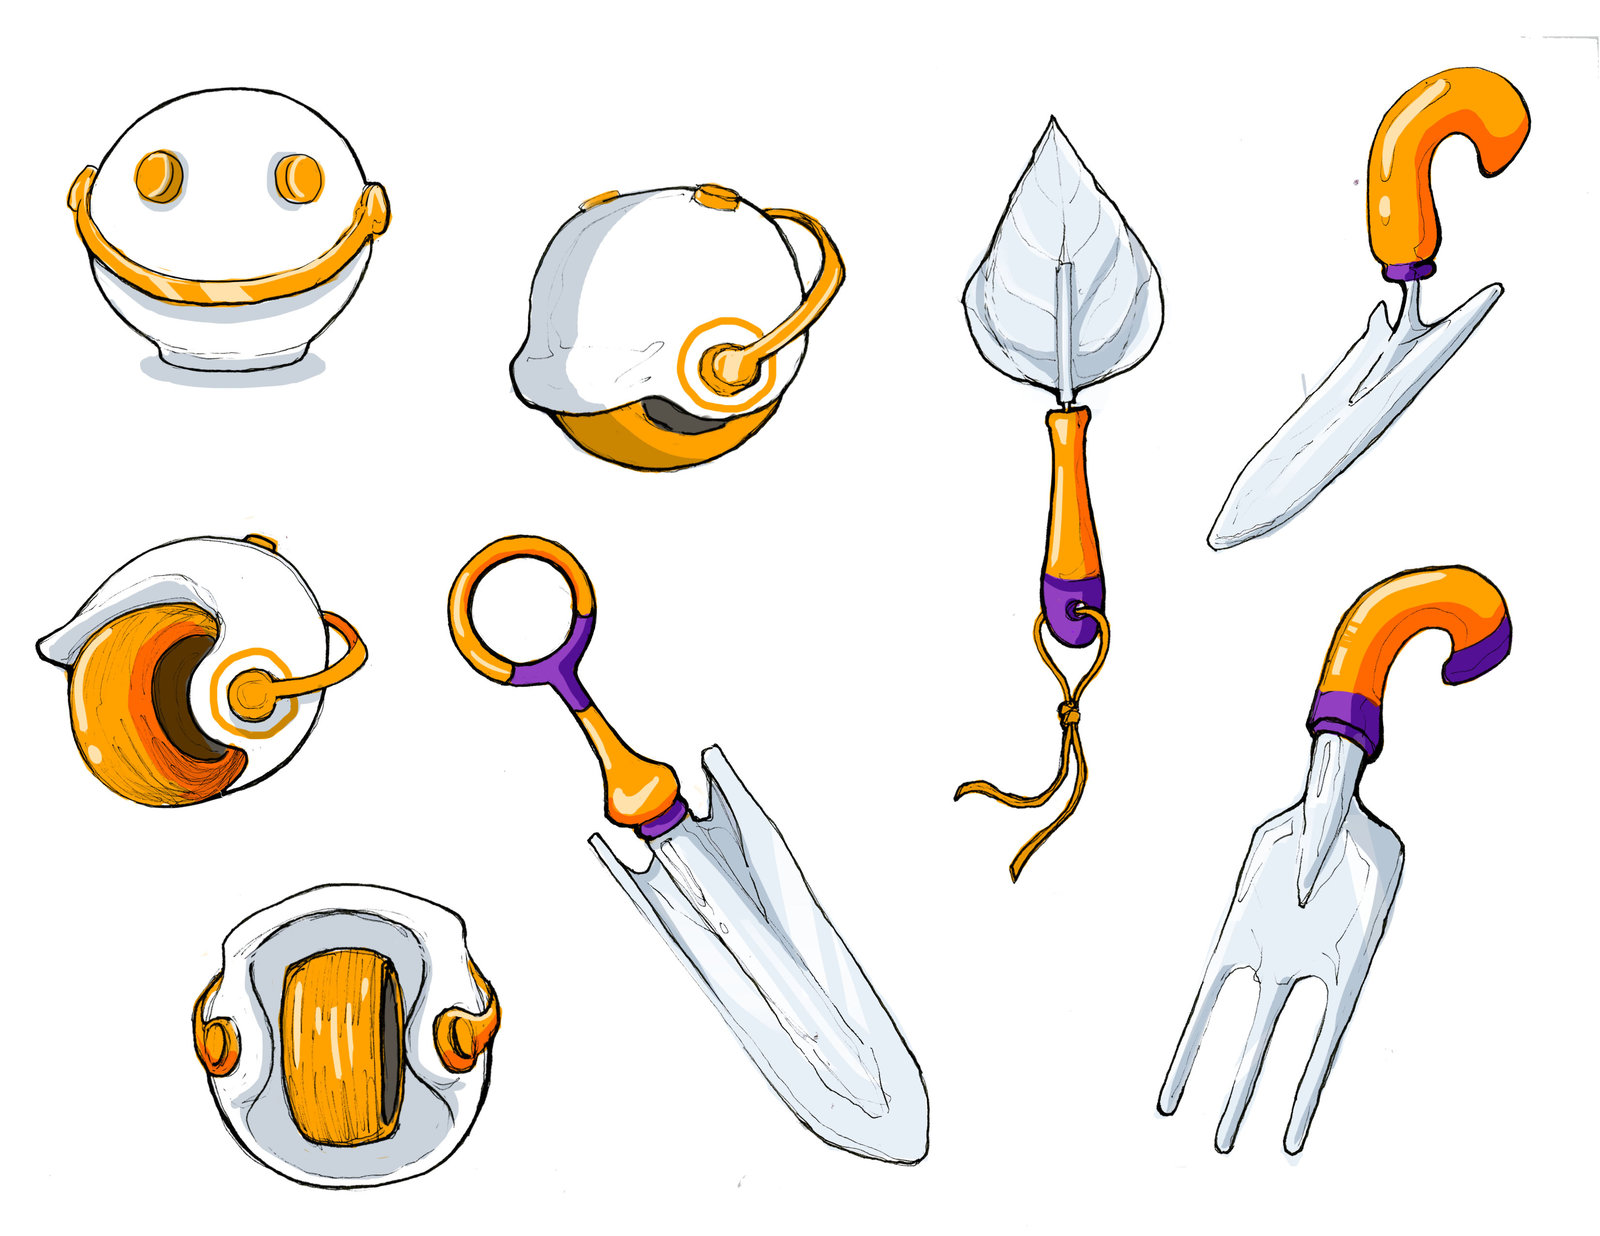 """Nahlah's gardening tools, plus the """"Wheely-Handy"""" that shaves off calluses for those who garden or parkour."""